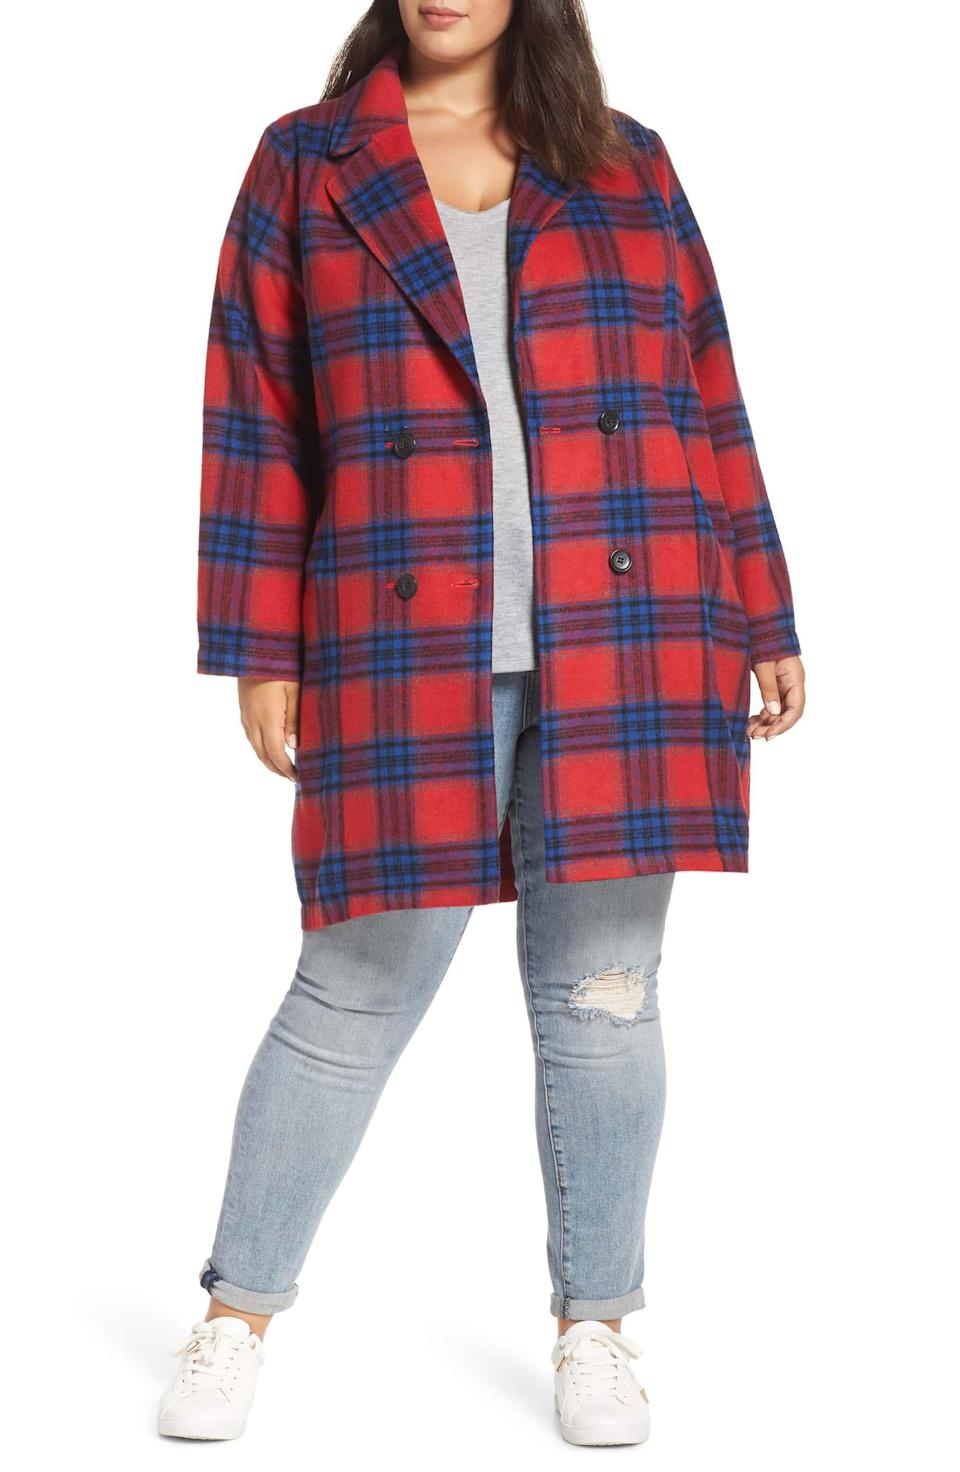 "<p>Nothing says cold weather fashion to me like a thick longline plaid coat. Wear this one paired with everything from jeans to a matching athleisure set for an instant tailored look.<br><strong><a href=""https://go.skimresources.com?id=125078X1586062&xs=1&url=https%3A%2F%2Fshop.nordstrom.com%2Fs%2Fbp-double-breasted-plaid-jacket-plus-size%2F5002548%3Forigin%3Dkeywordsearch-personalizedsort%26breadcrumb%3DHome%252FAll%2520Results%26color%3Dred%2520chinoise%2520rita%2520plaid"" rel=""nofollow noopener"" target=""_blank"" data-ylk=""slk:Shop it:"" class=""link rapid-noclick-resp"">Shop it:</a></strong> BP Double Breasted Plaid Jacket, $89, <a href=""https://go.skimresources.com?id=125078X1586062&xs=1&url=https%3A%2F%2Fshop.nordstrom.com%2Fs%2Fbp-double-breasted-plaid-jacket-plus-size%2F5002548%3Forigin%3Dkeywordsearch-personalizedsort%26breadcrumb%3DHome%252FAll%2520Results%26color%3Dred%2520chinoise%2520rita%2520plaid"" rel=""nofollow noopener"" target=""_blank"" data-ylk=""slk:nordstrom.com"" class=""link rapid-noclick-resp"">nordstrom.com</a> </p>"